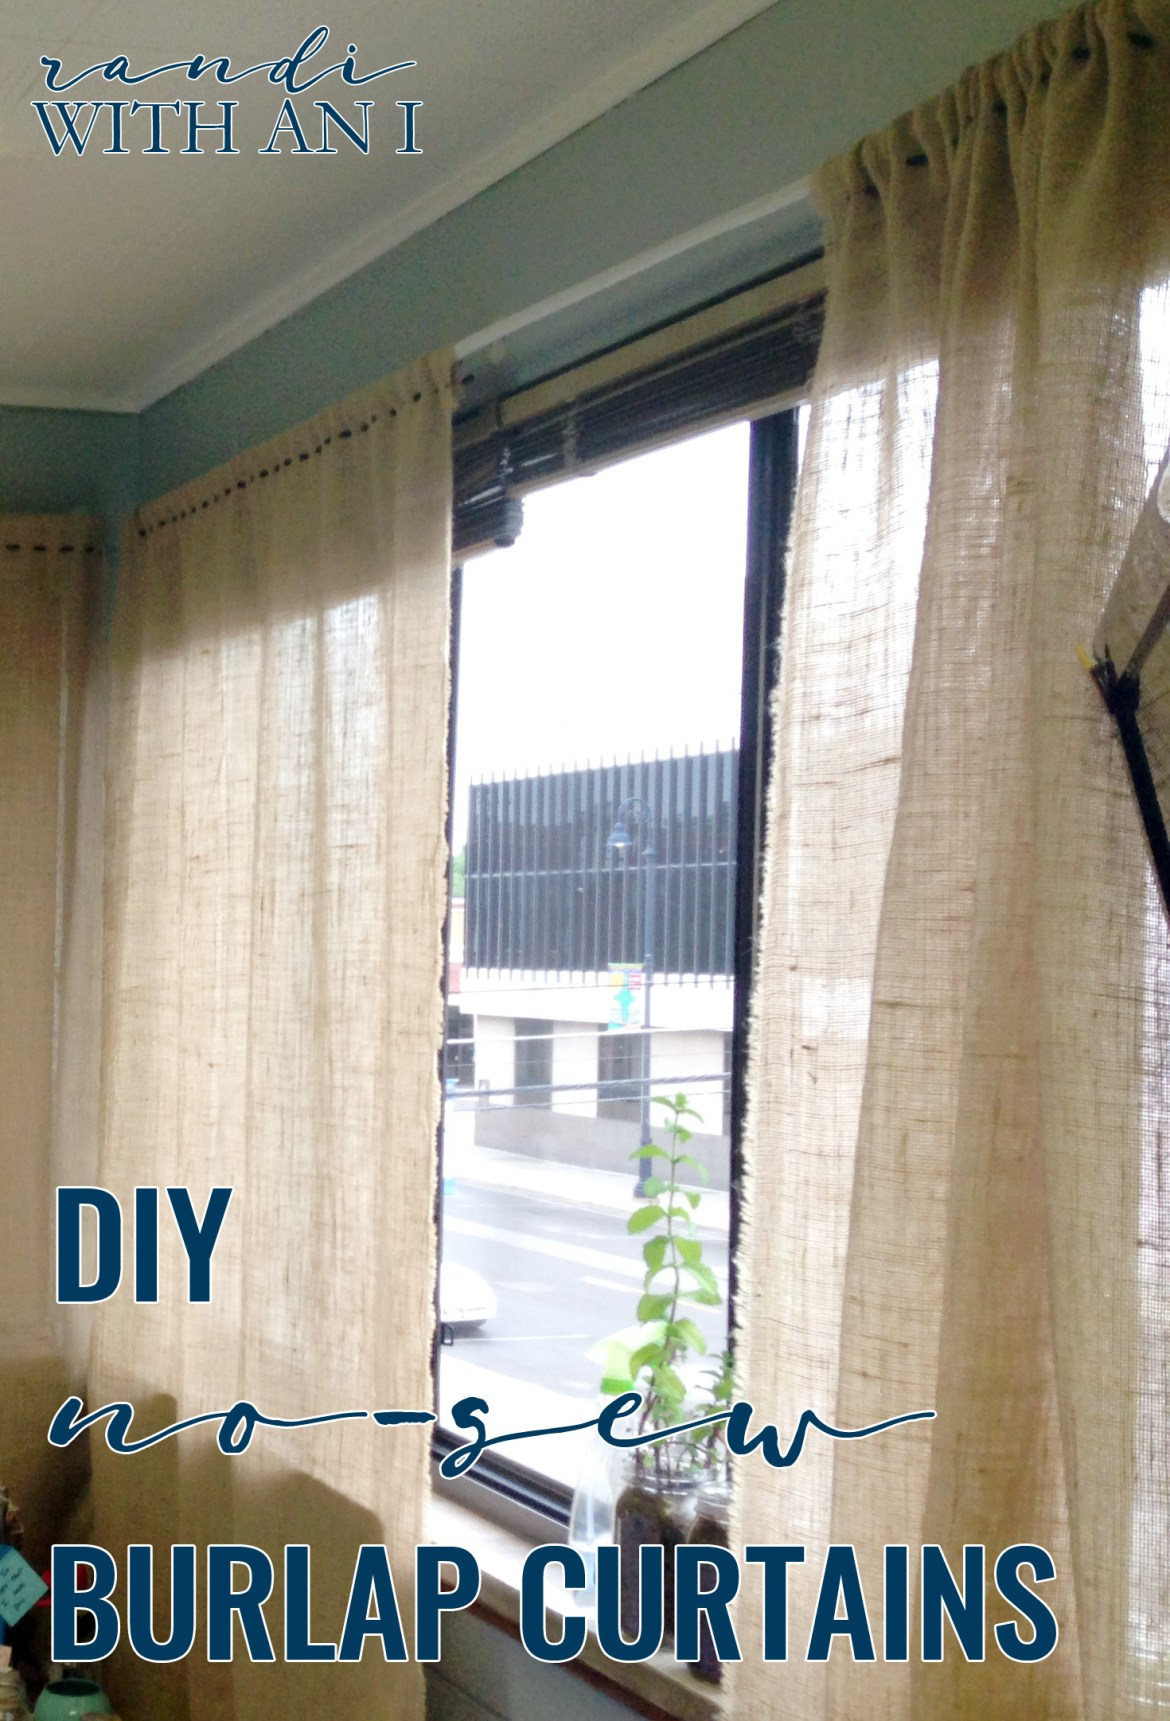 burlap_curtains_diy